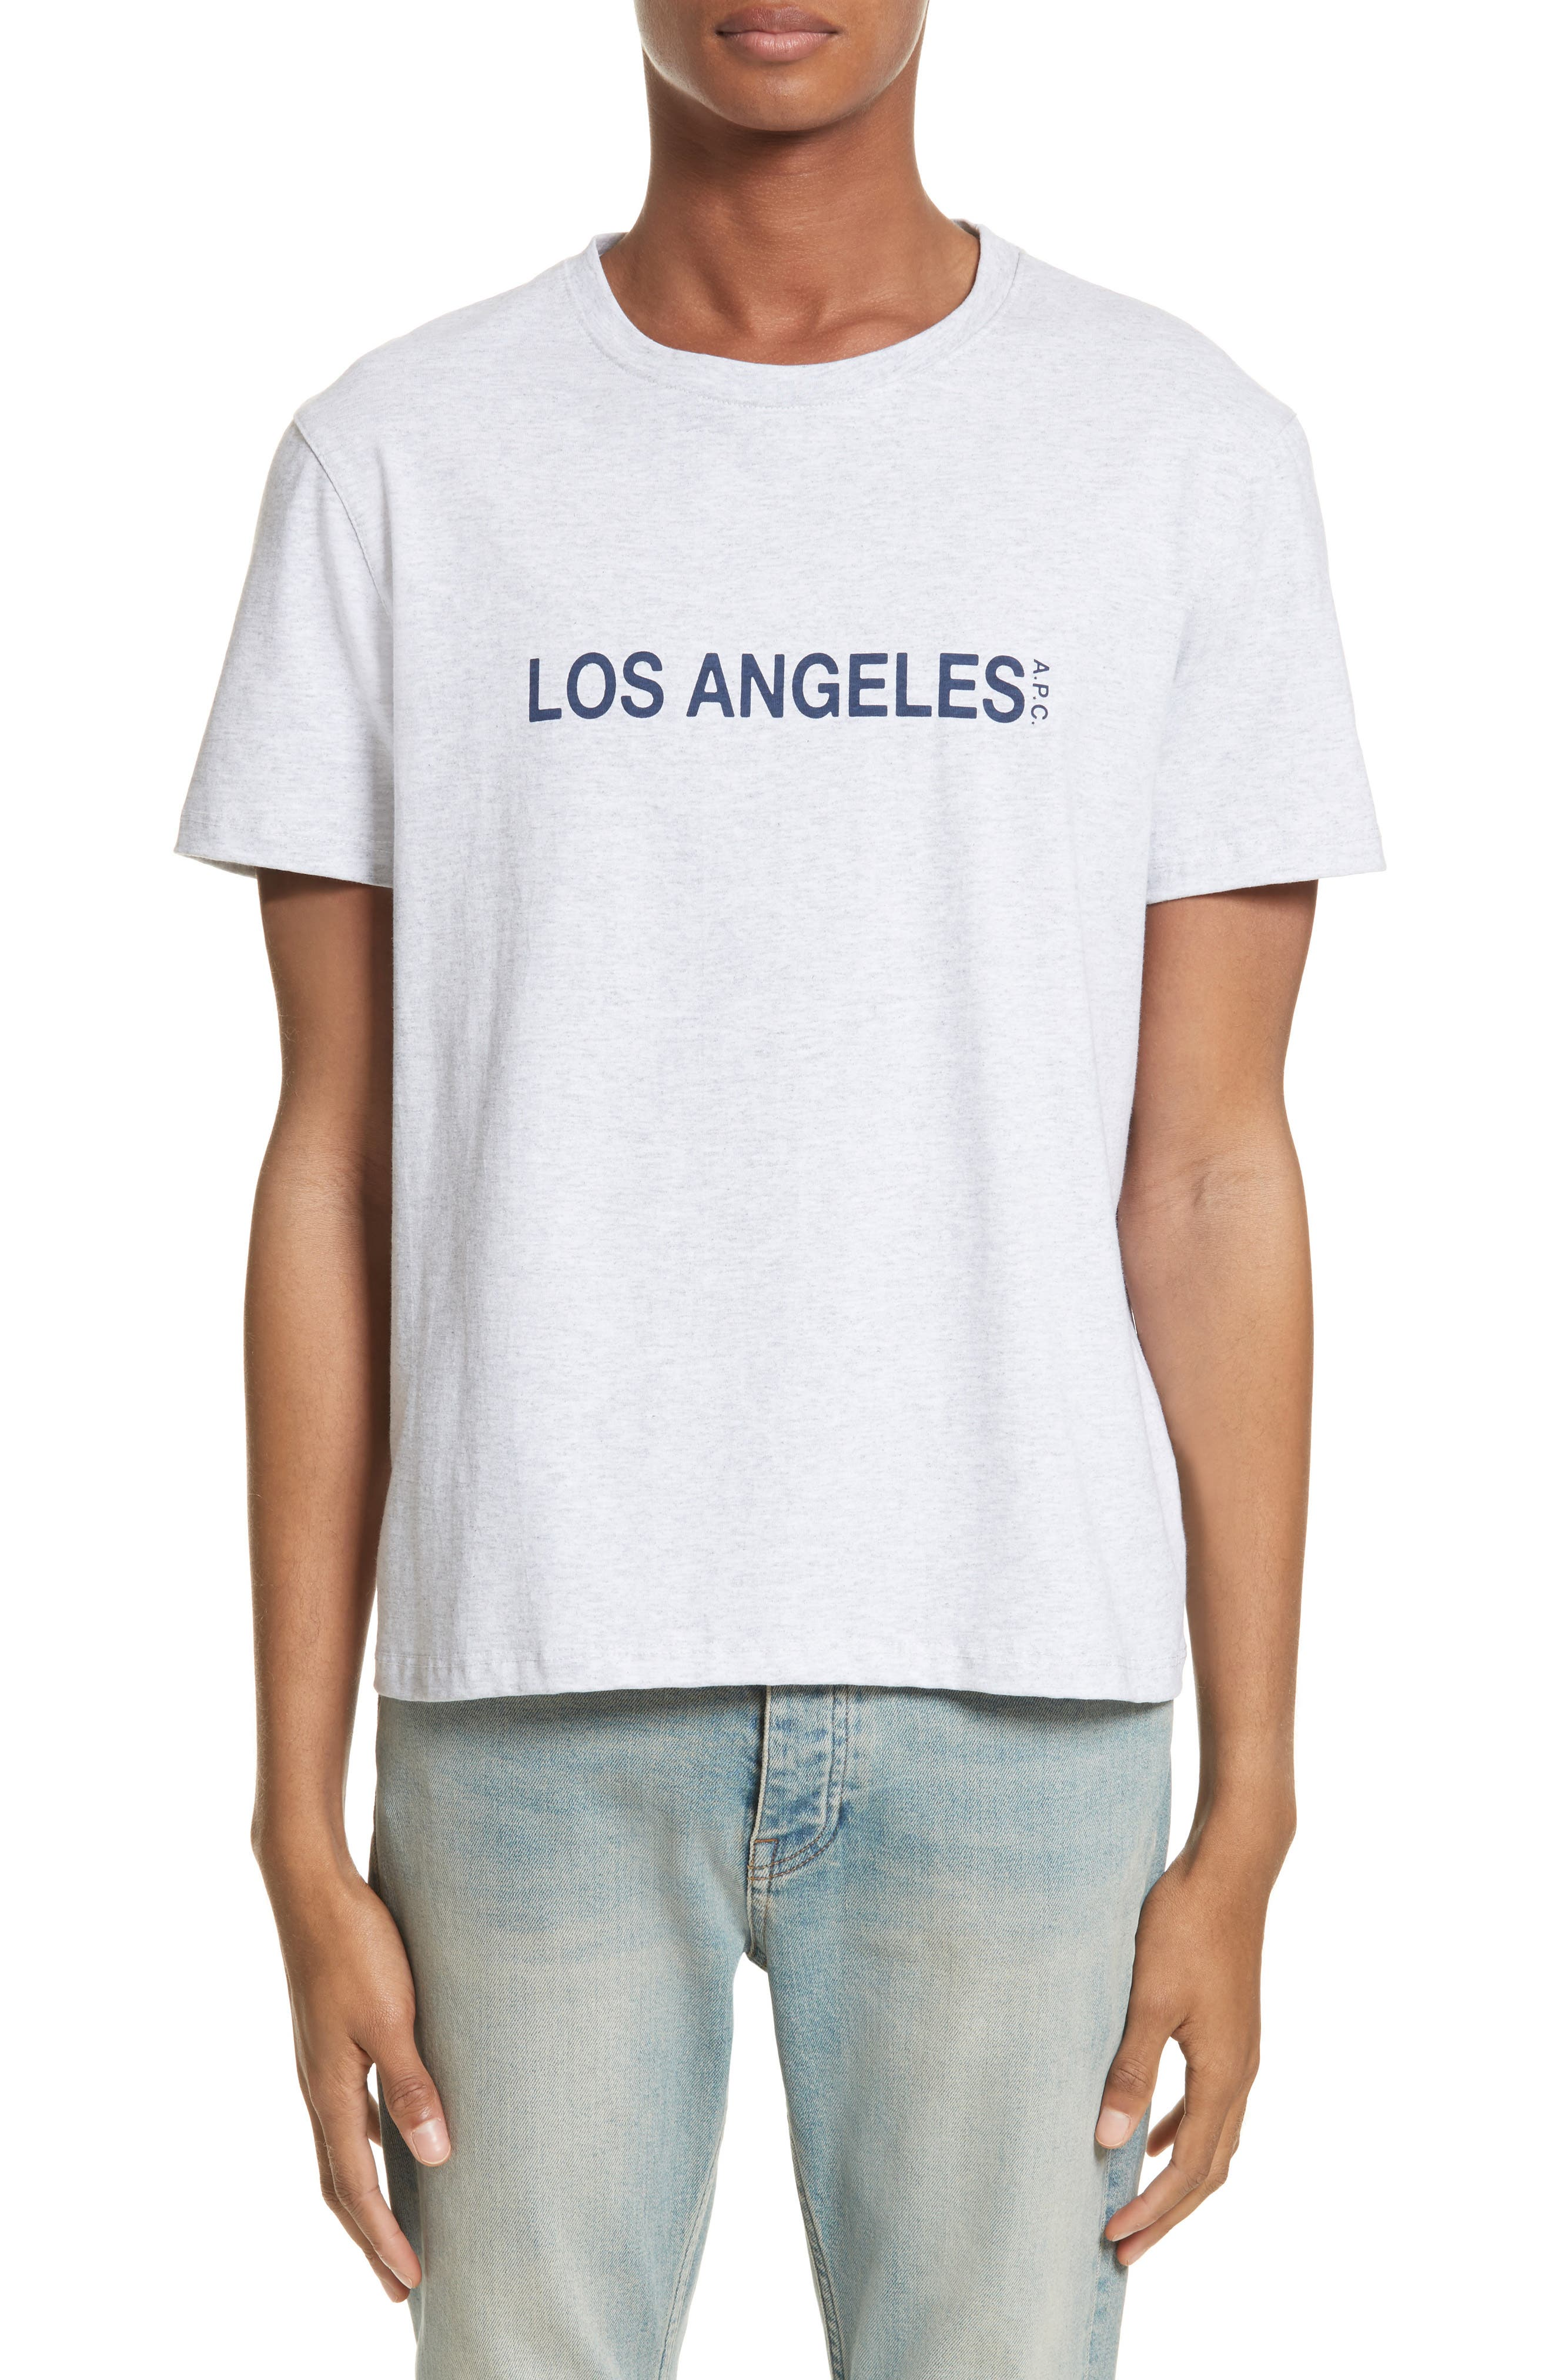 Main Image - A.P.C. Los Angeles Graphic T-Shirt